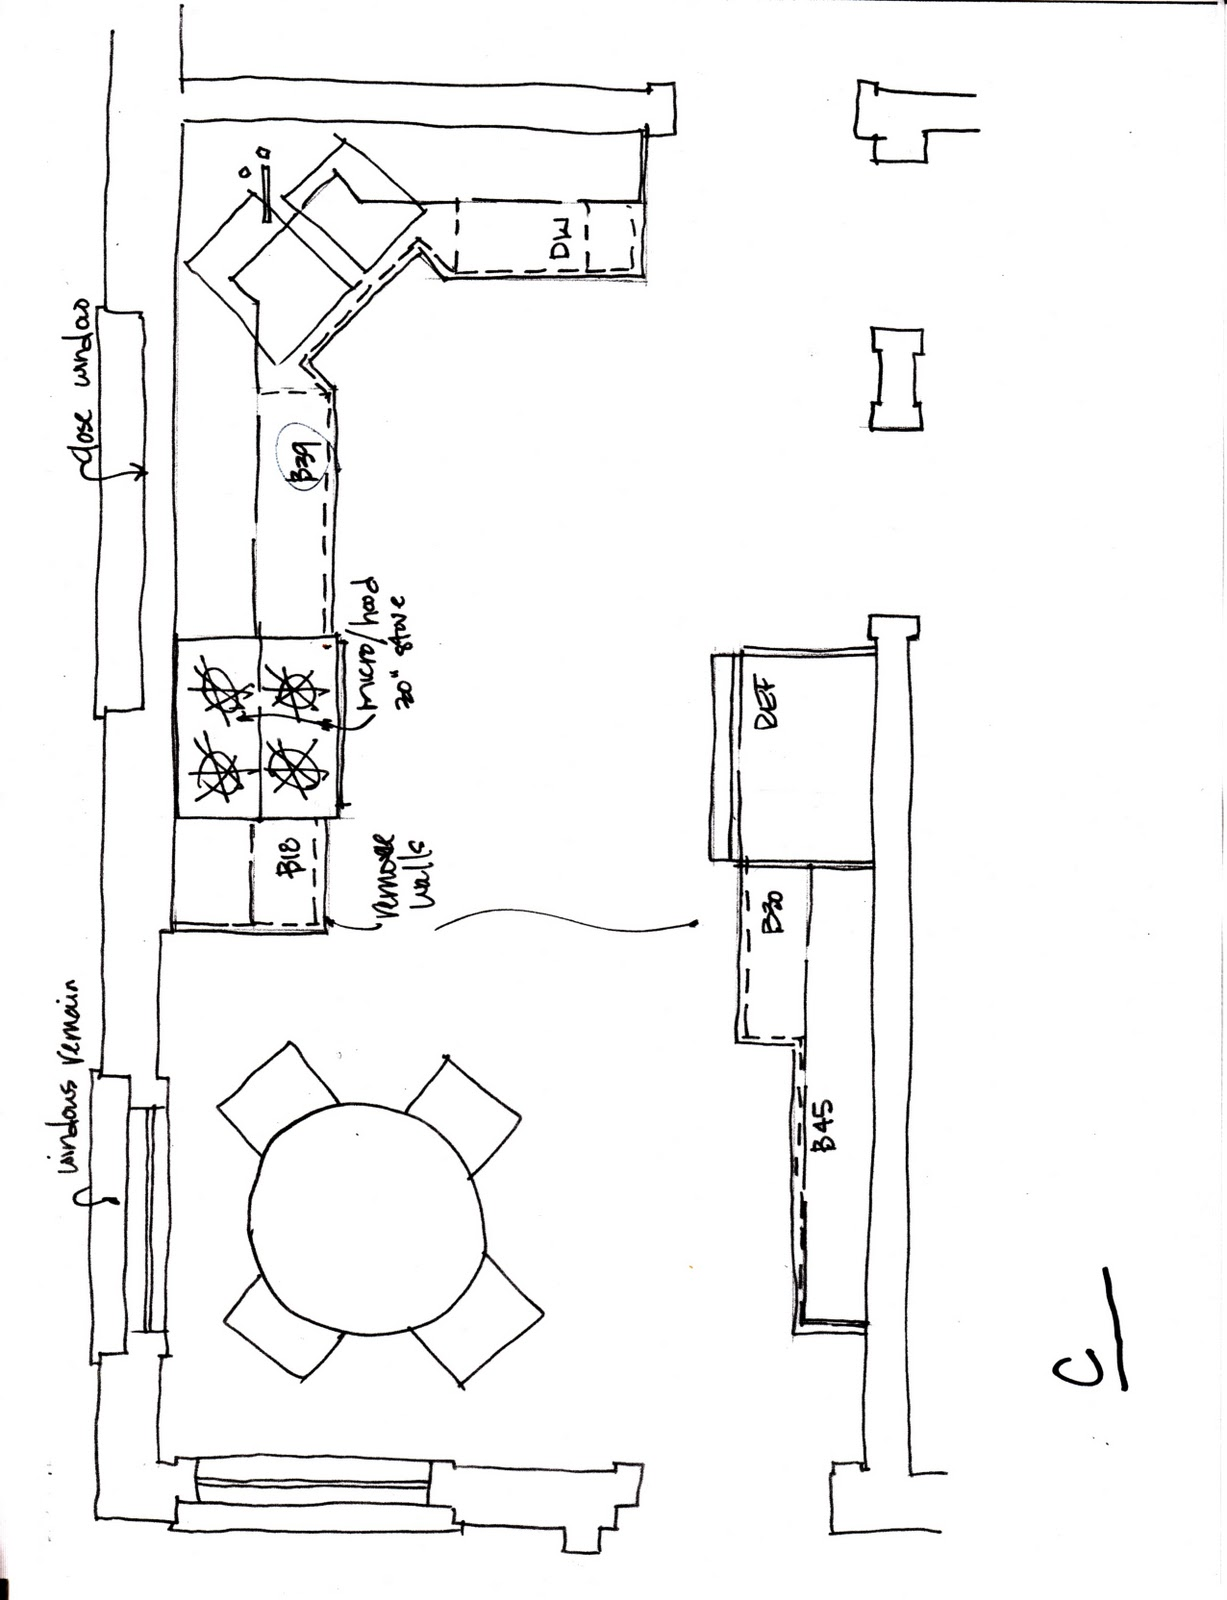 Small kitchen layouts plans afreakatheart for Small kitchen designs layouts pictures